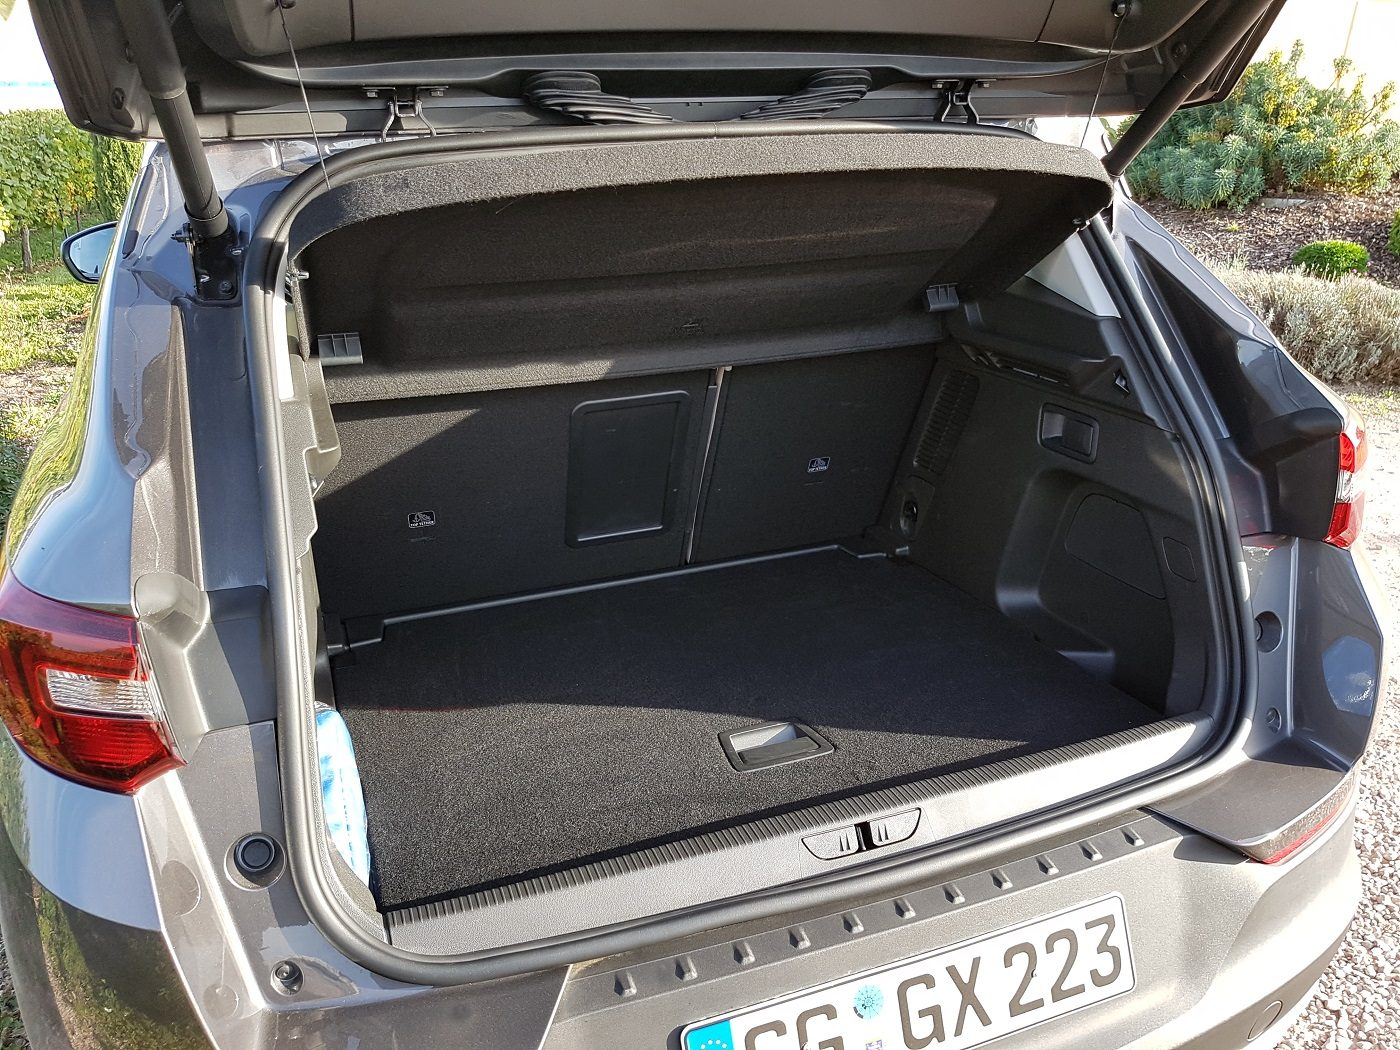 kompaktes suv im family check der opel grandland x. Black Bedroom Furniture Sets. Home Design Ideas